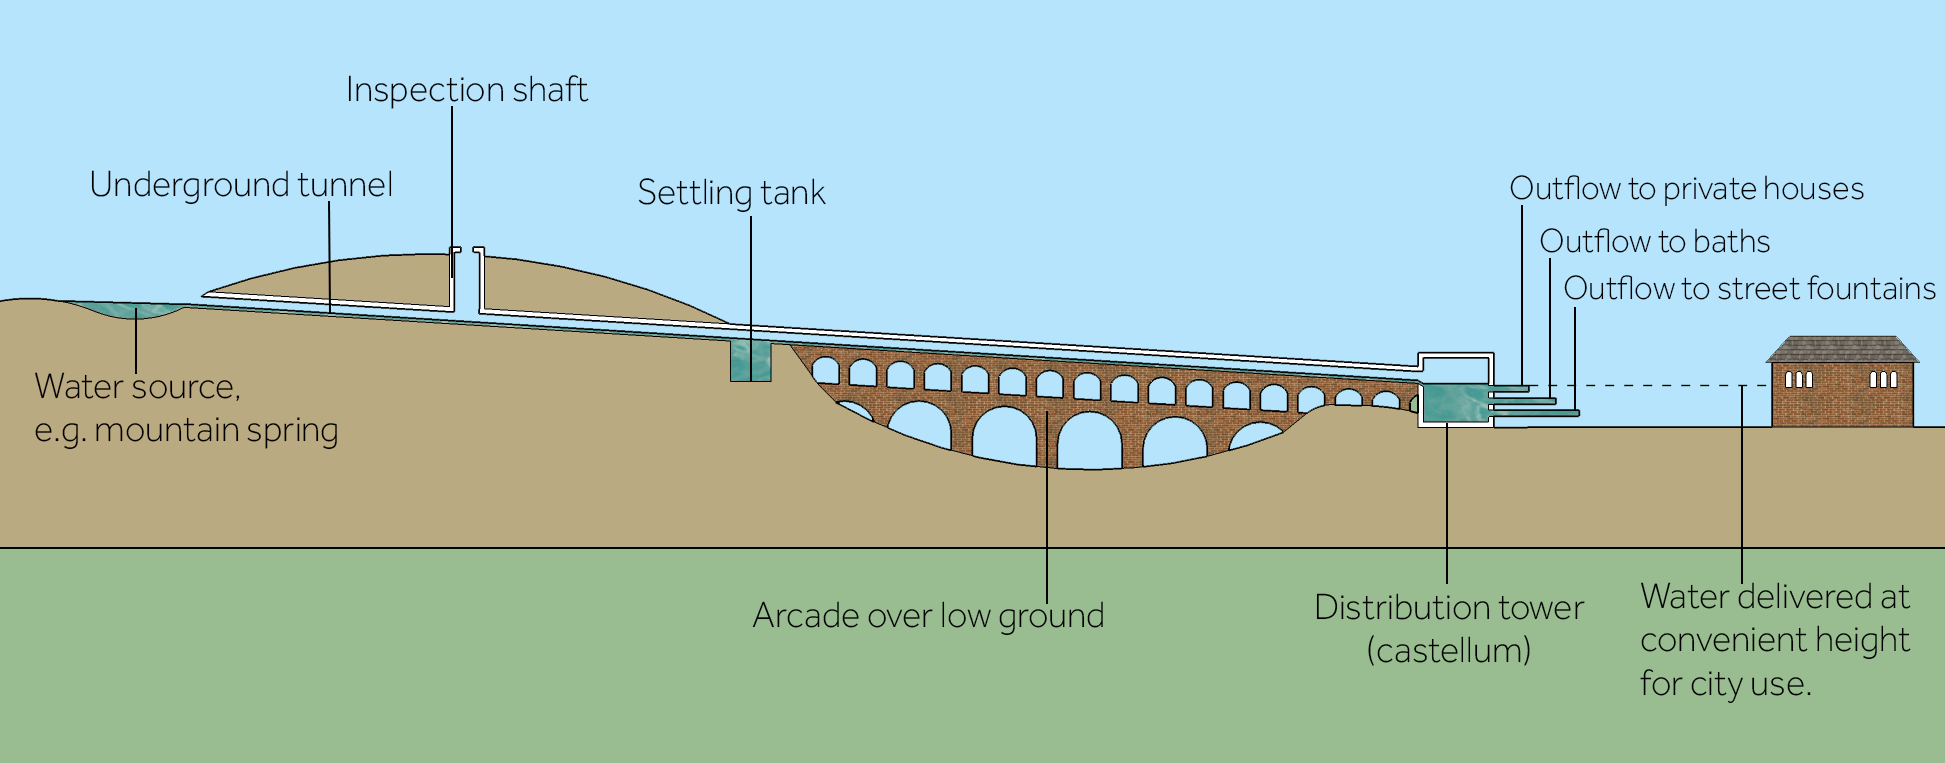 hight resolution of a diagram showing an aqueduct system